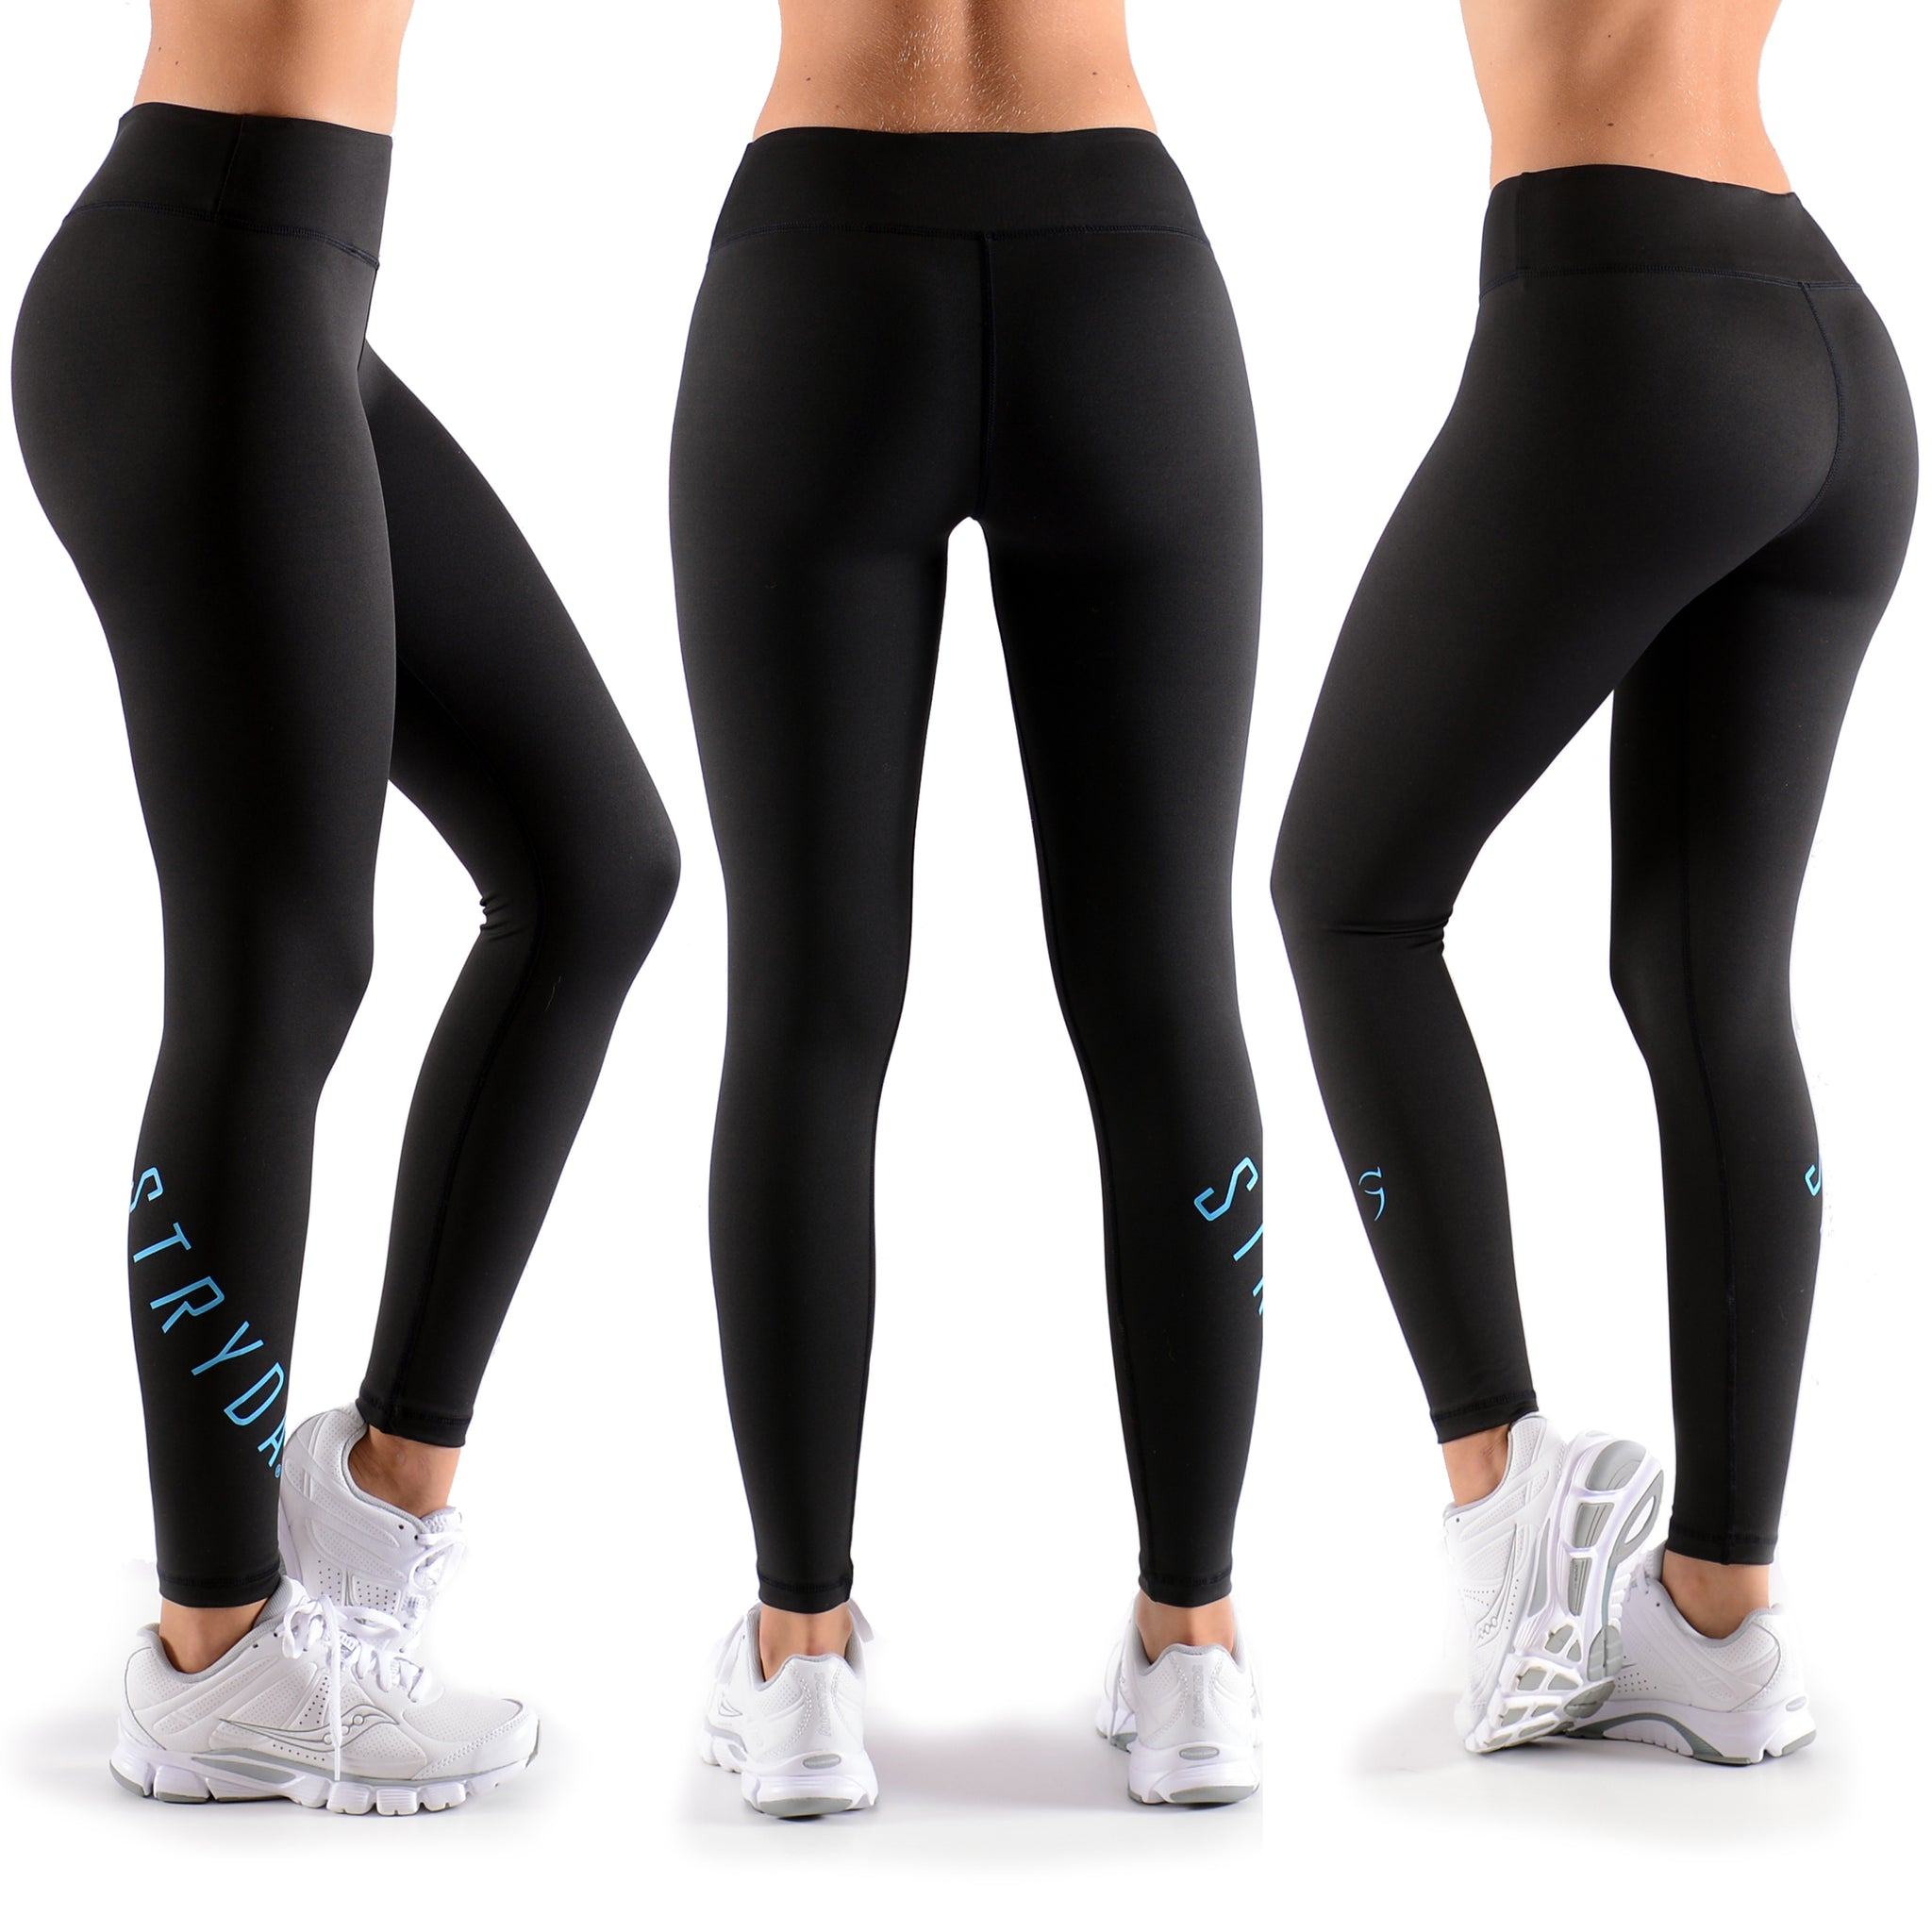 BLUE PANTHER Ankle Biter Compression Tights